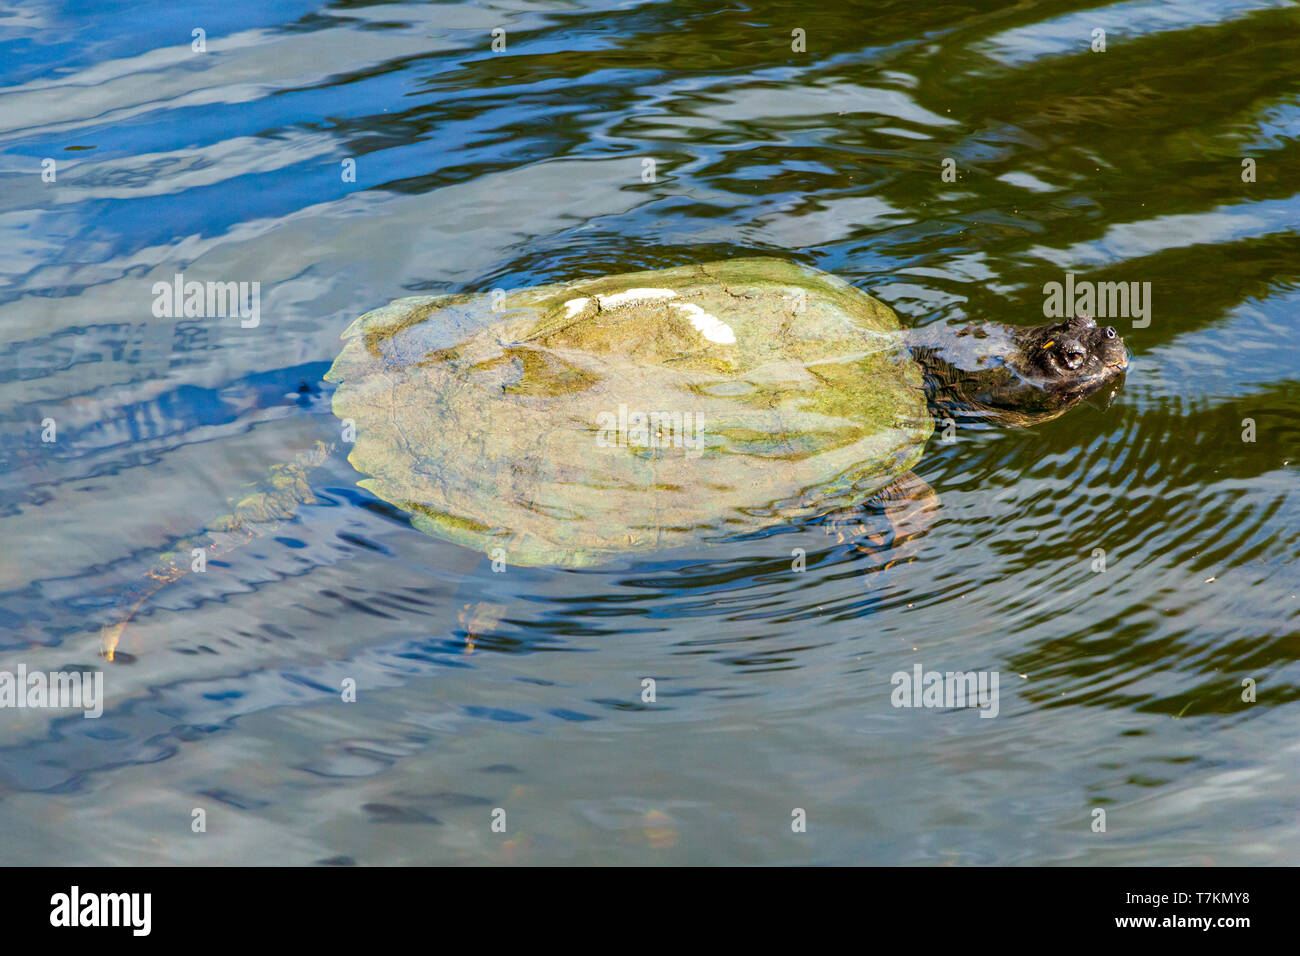 Common snapping turtle (Chelydra serpentina) in canal - Robbins Preserve, Davie, Florida, USA - Stock Image